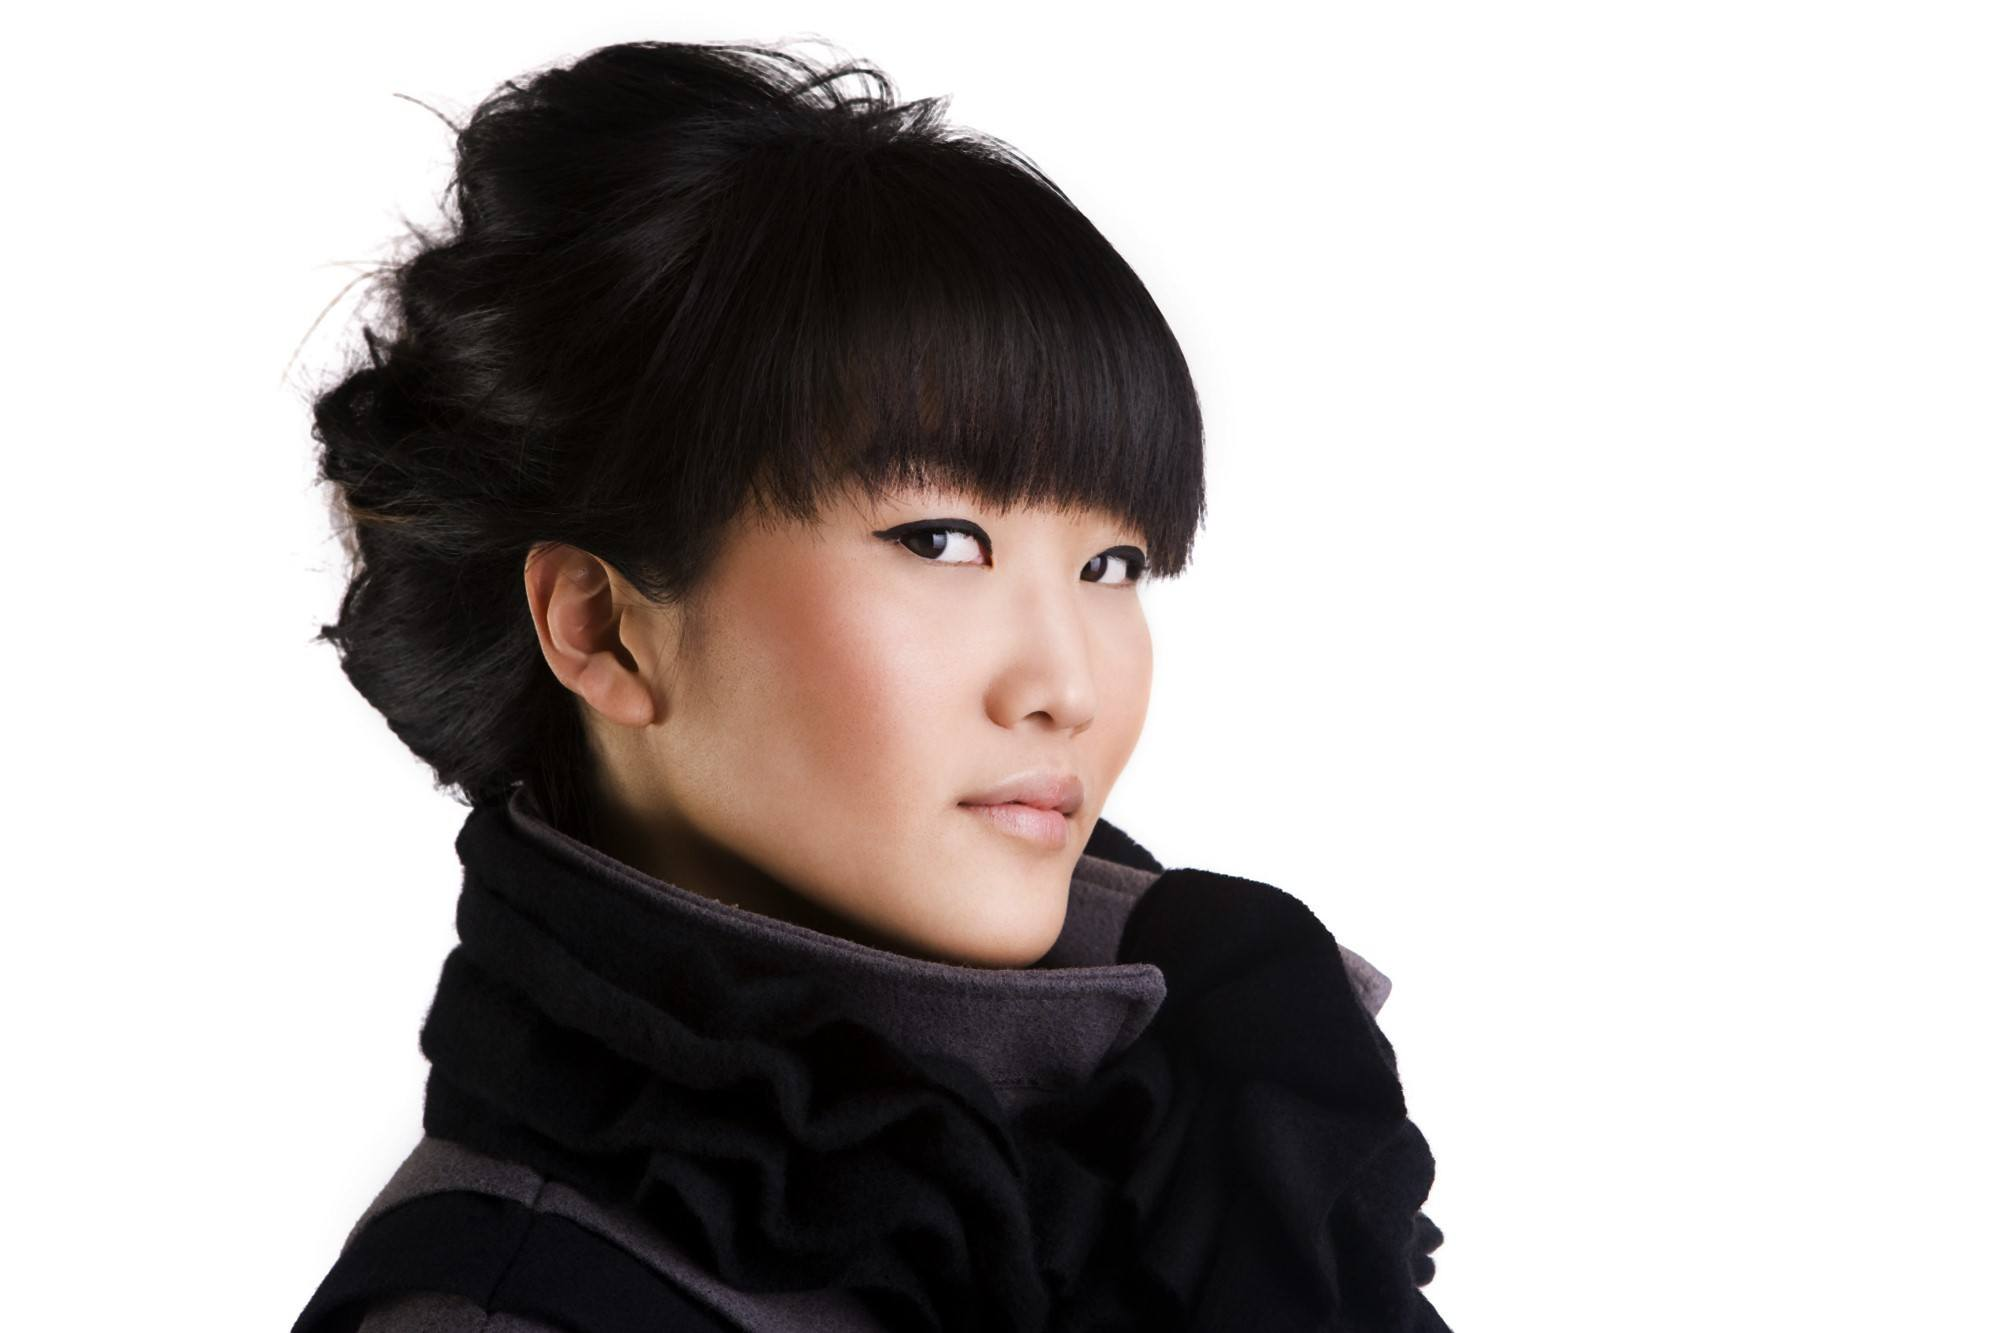 Japanese hairstyles: Woman with casual updo